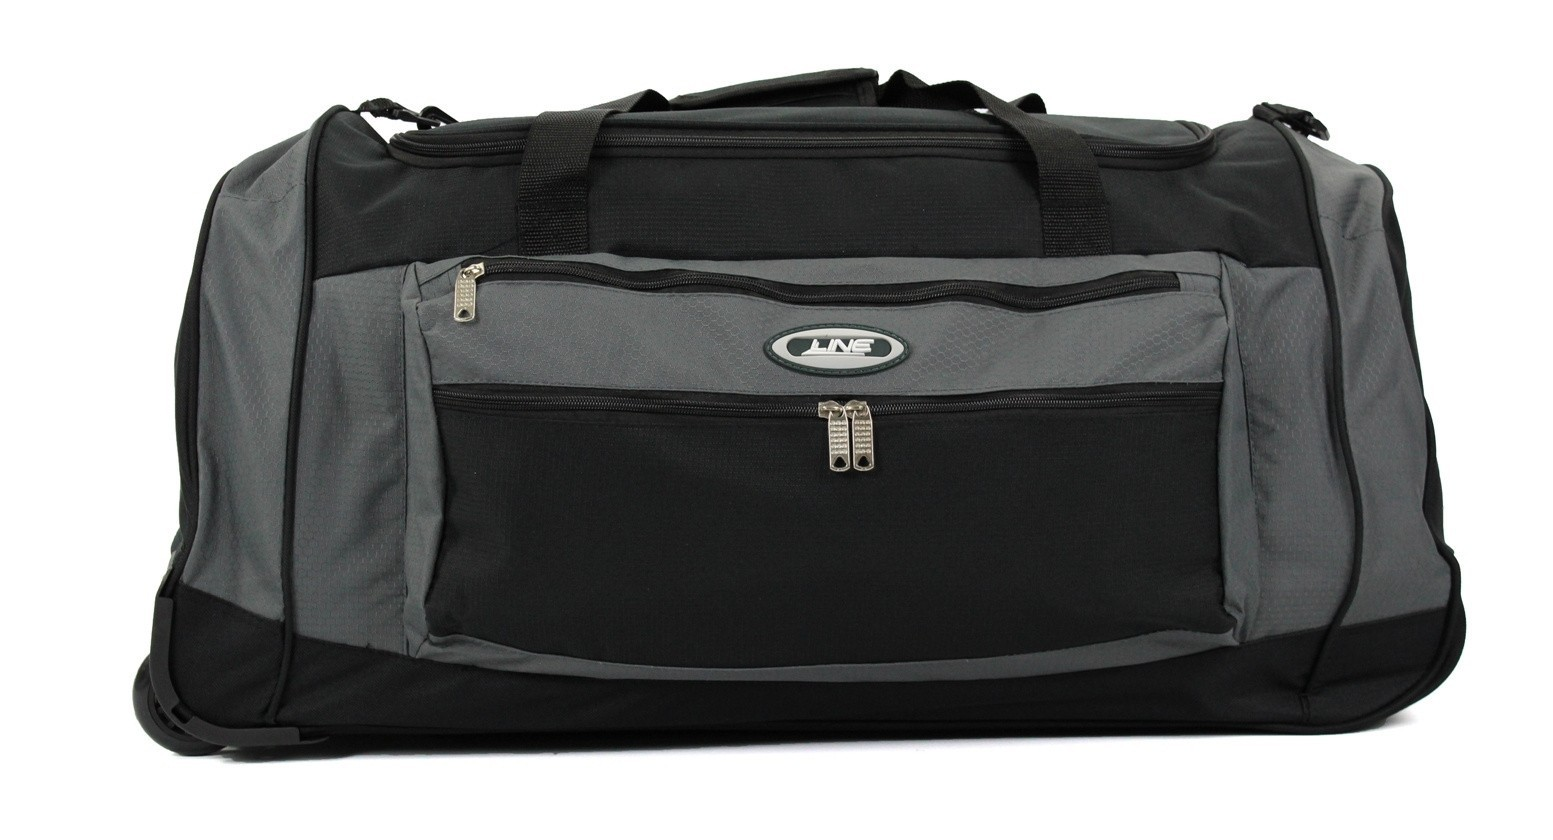 Line Travel Daley Wieltas Black/Grey